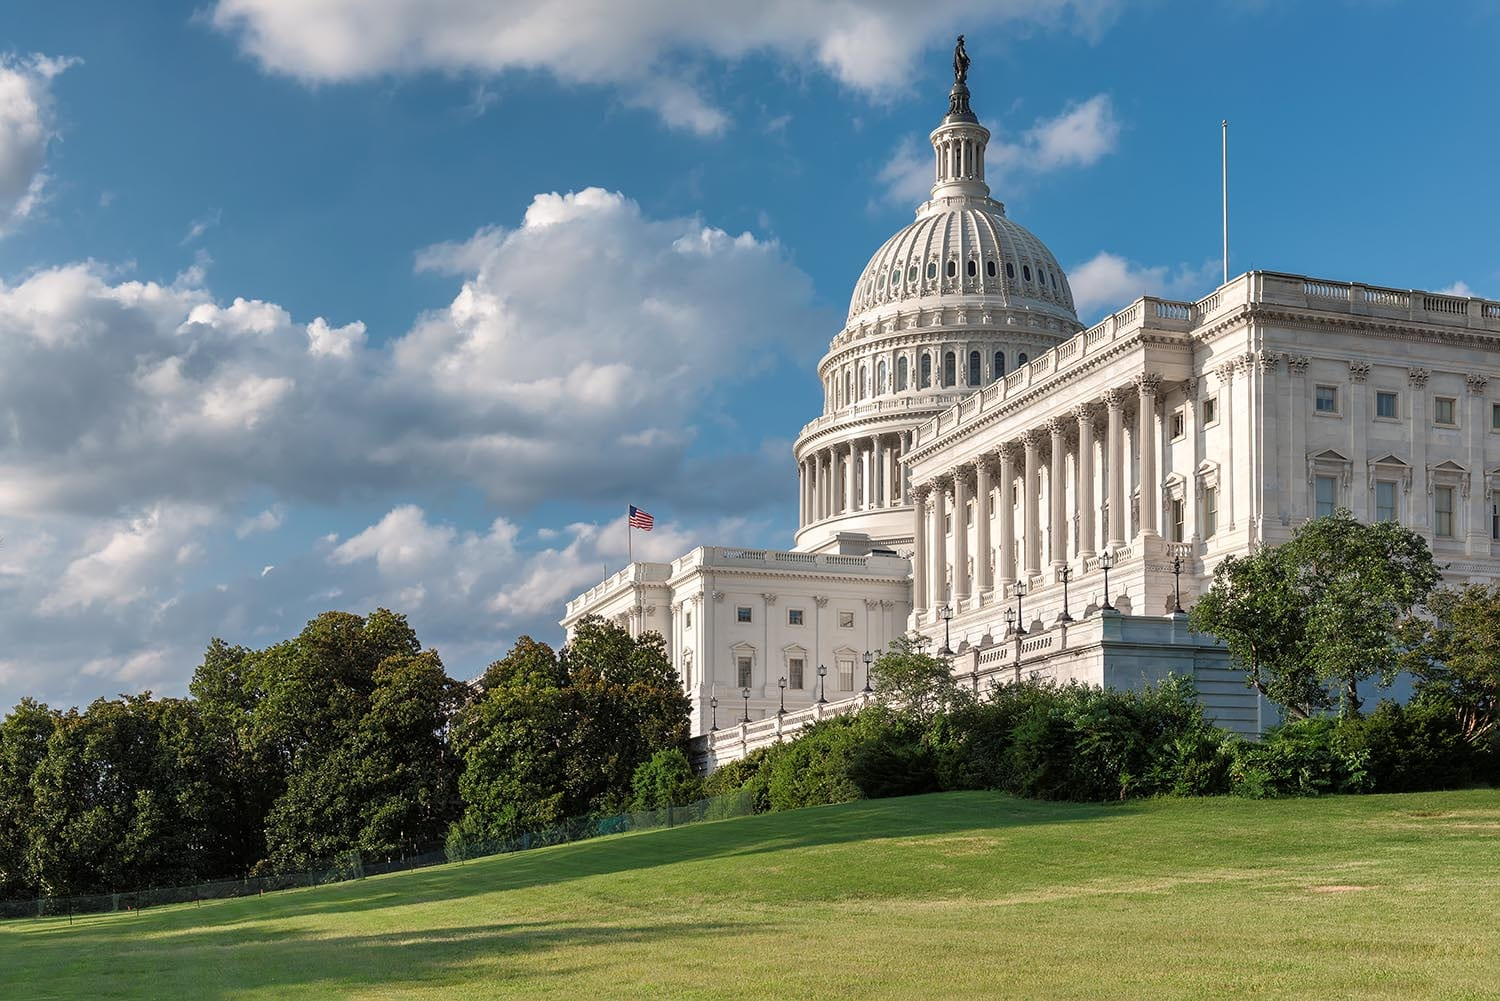 The United States Capitol, often called Capitol Hill, is the seat of the United States Congress, the legislative branch of the U.S. federal government. Capitol Hill, at the eastern end of the National Mall in Washington, D.C.